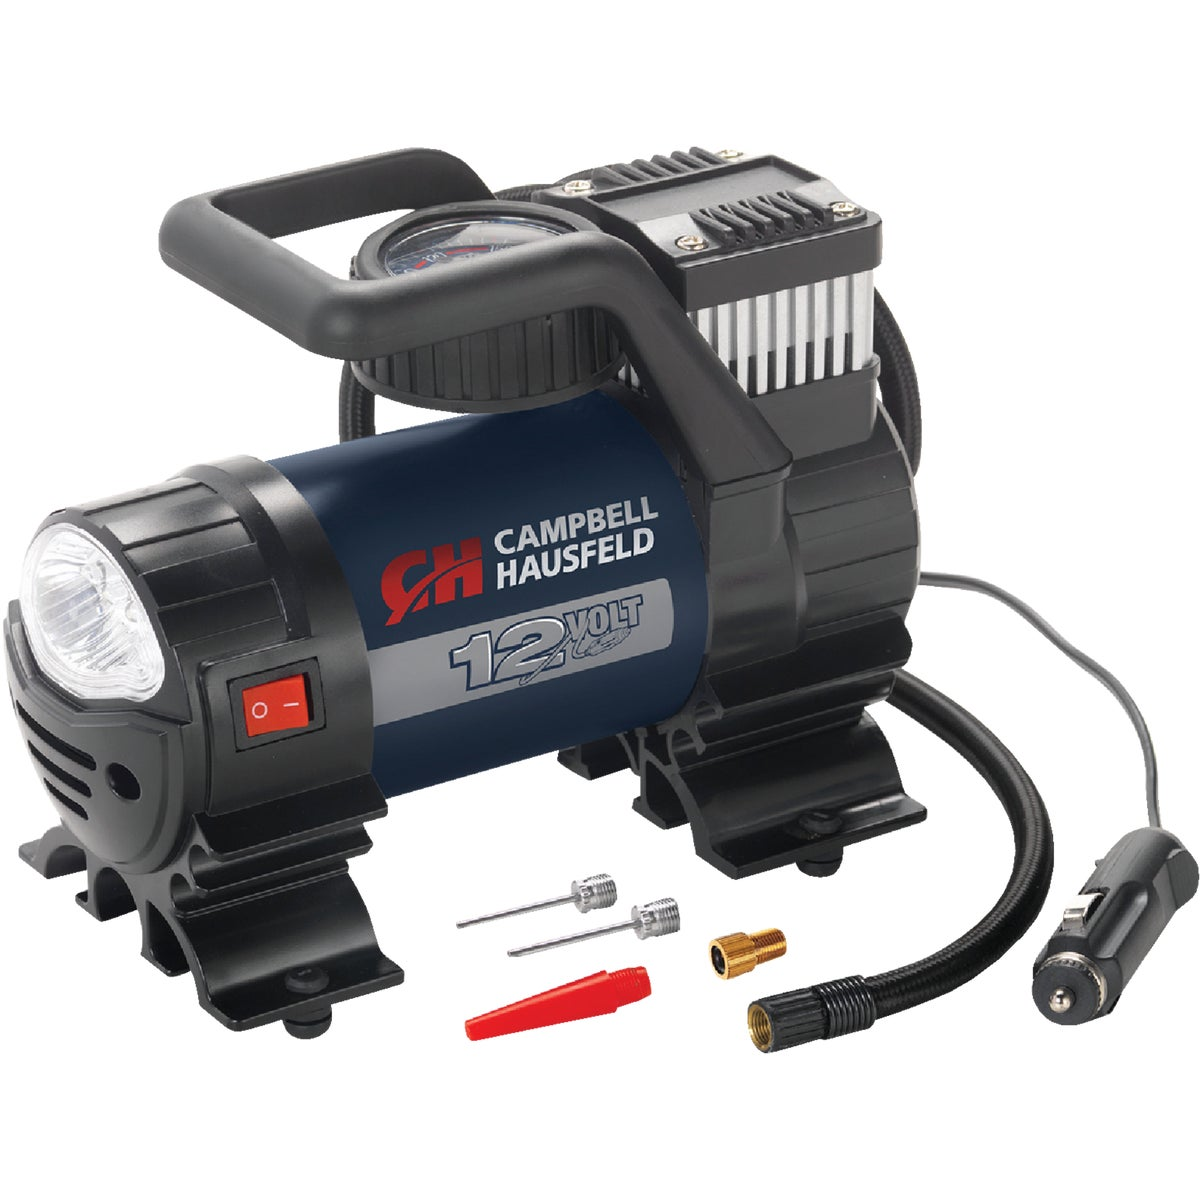 12V INFLATOR W/LIGHT - RP3200 by Campbell Hausfeld Co